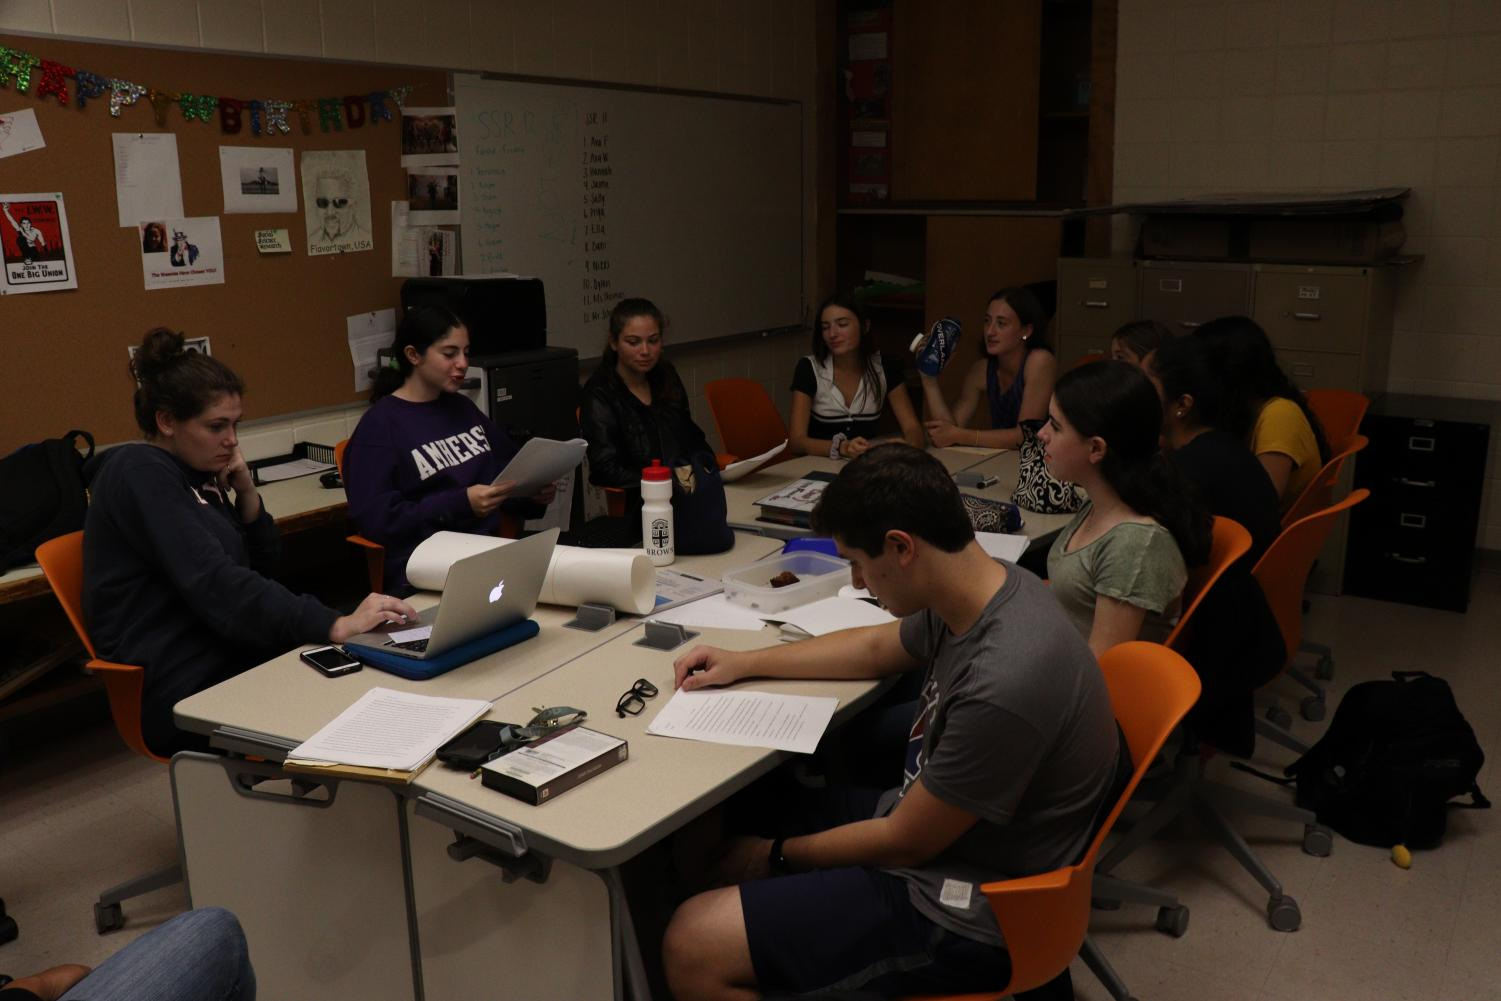 Jaime Levin critiques Ava Fasciano's research paper. The research program facilitates peer editing and collaboration.